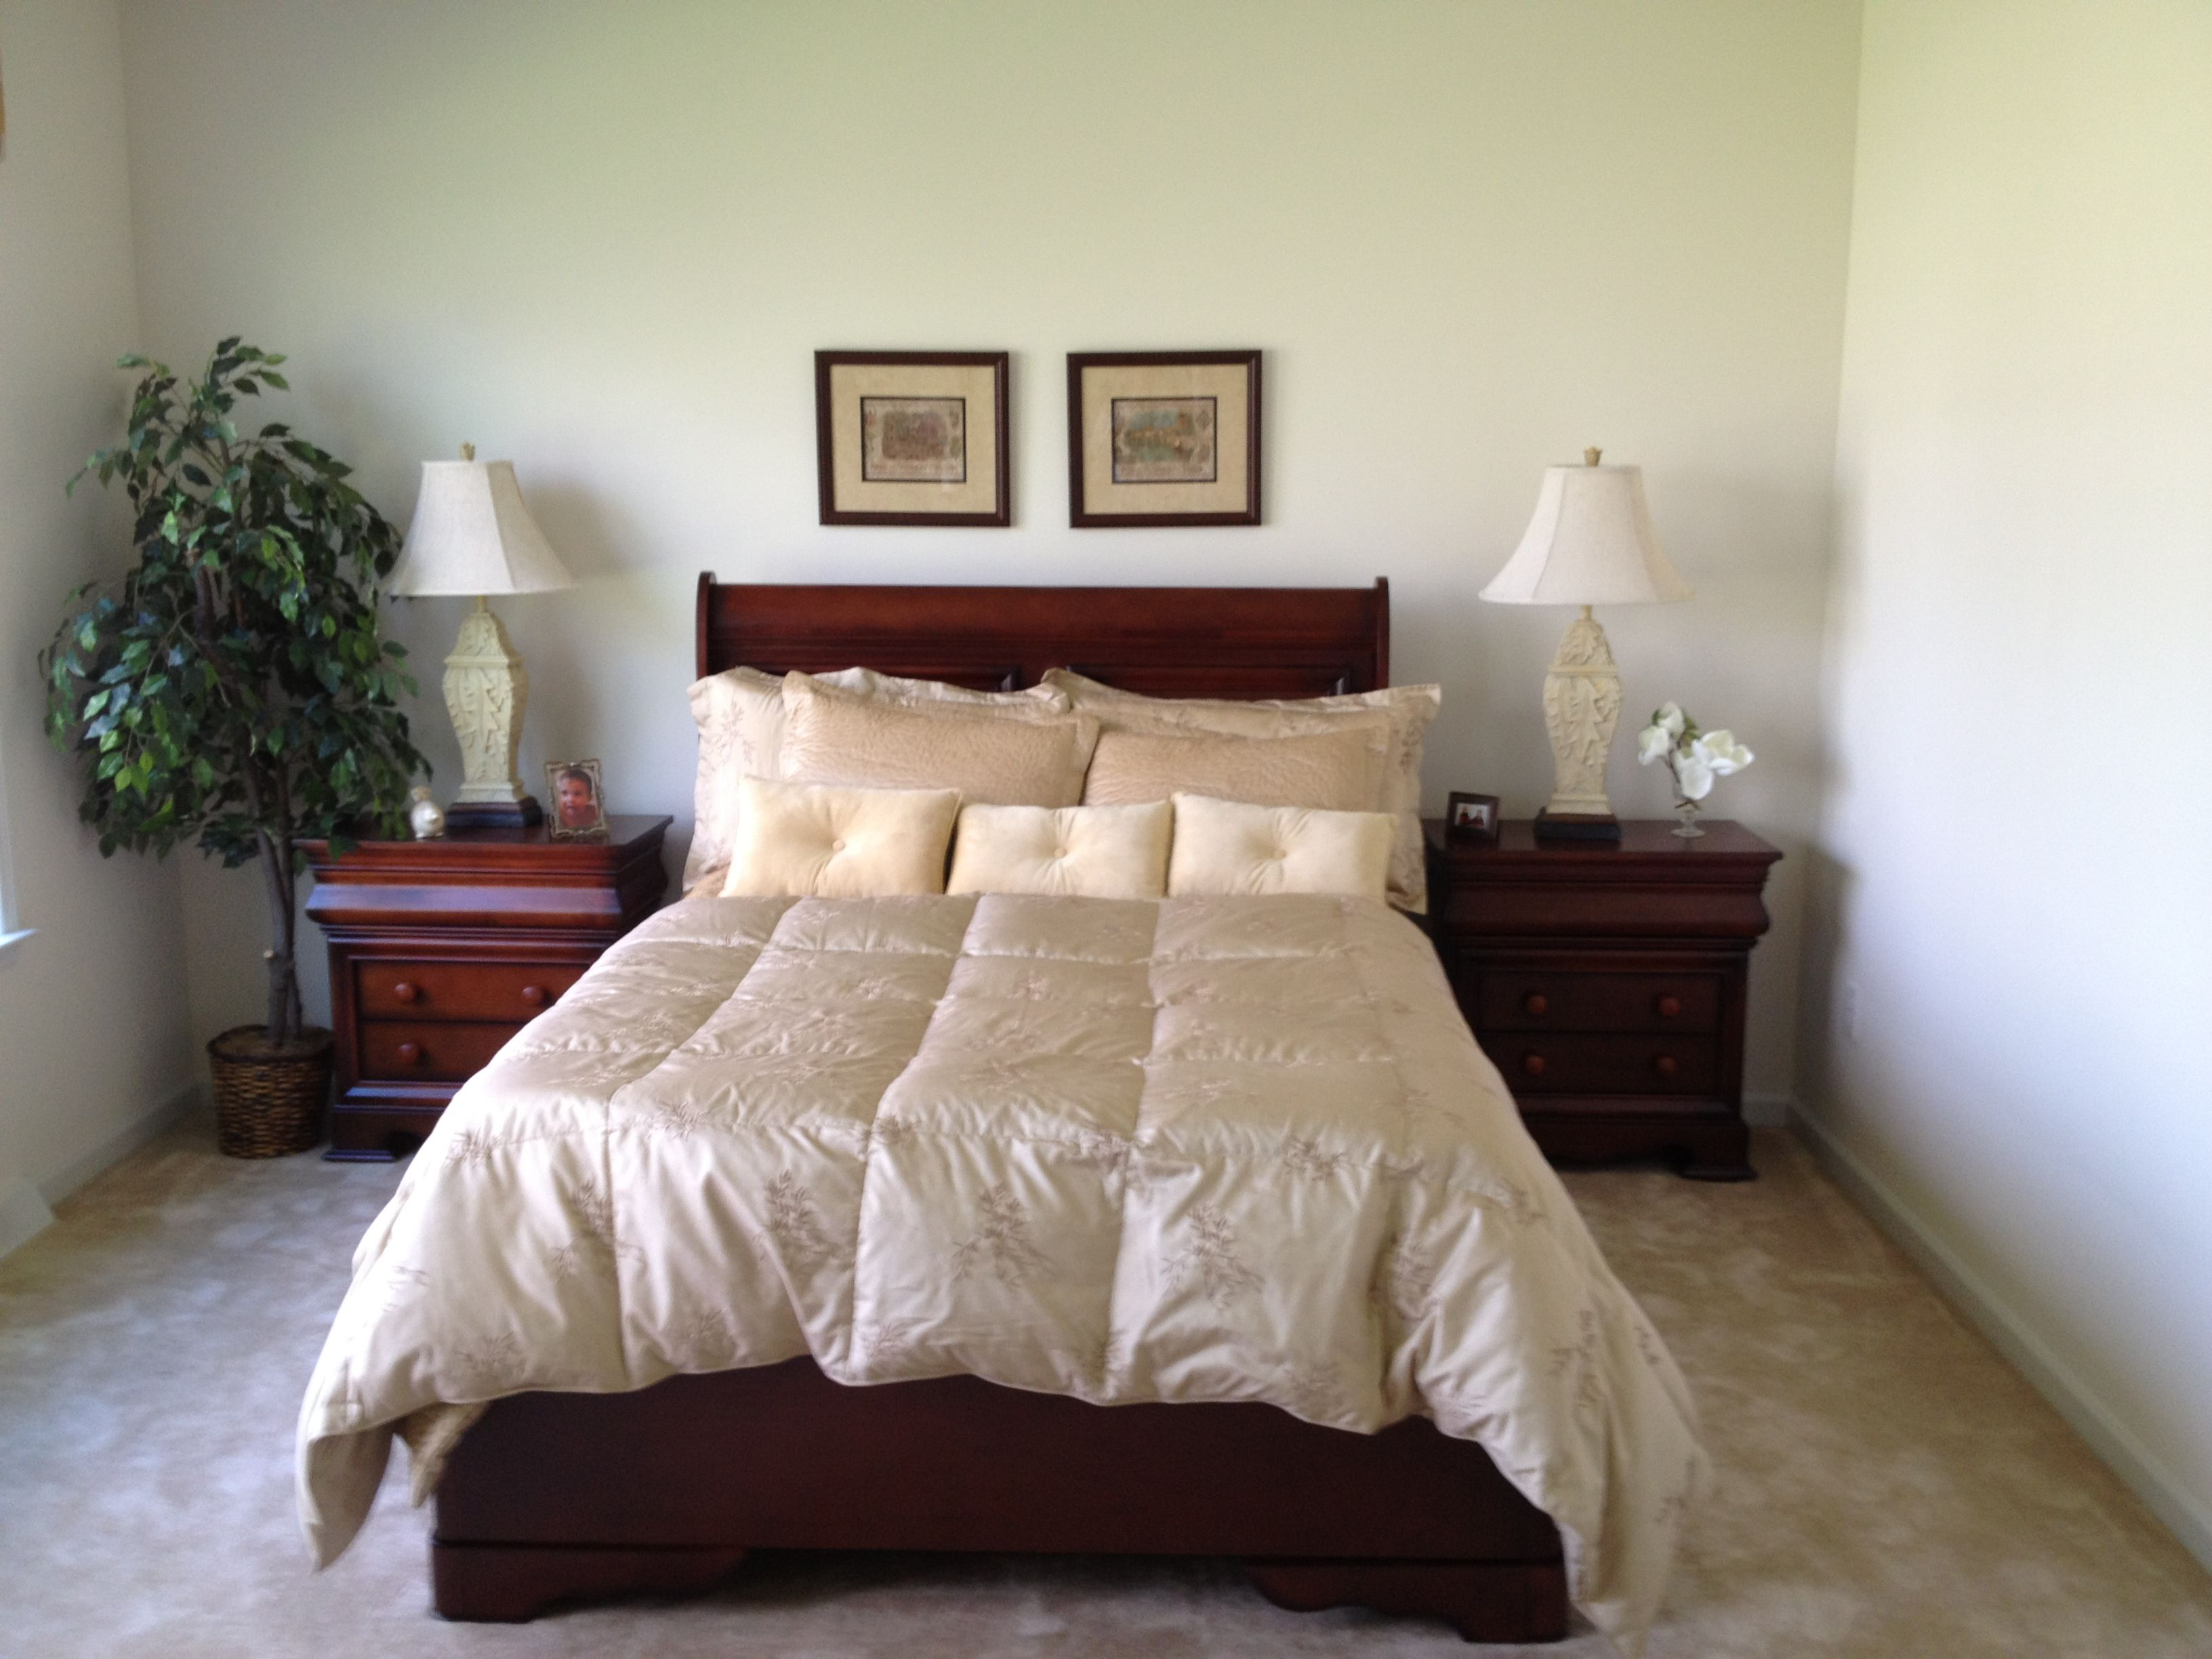 Bedroom featured in The Bethany By Ashburn Homes in Sussex, DE